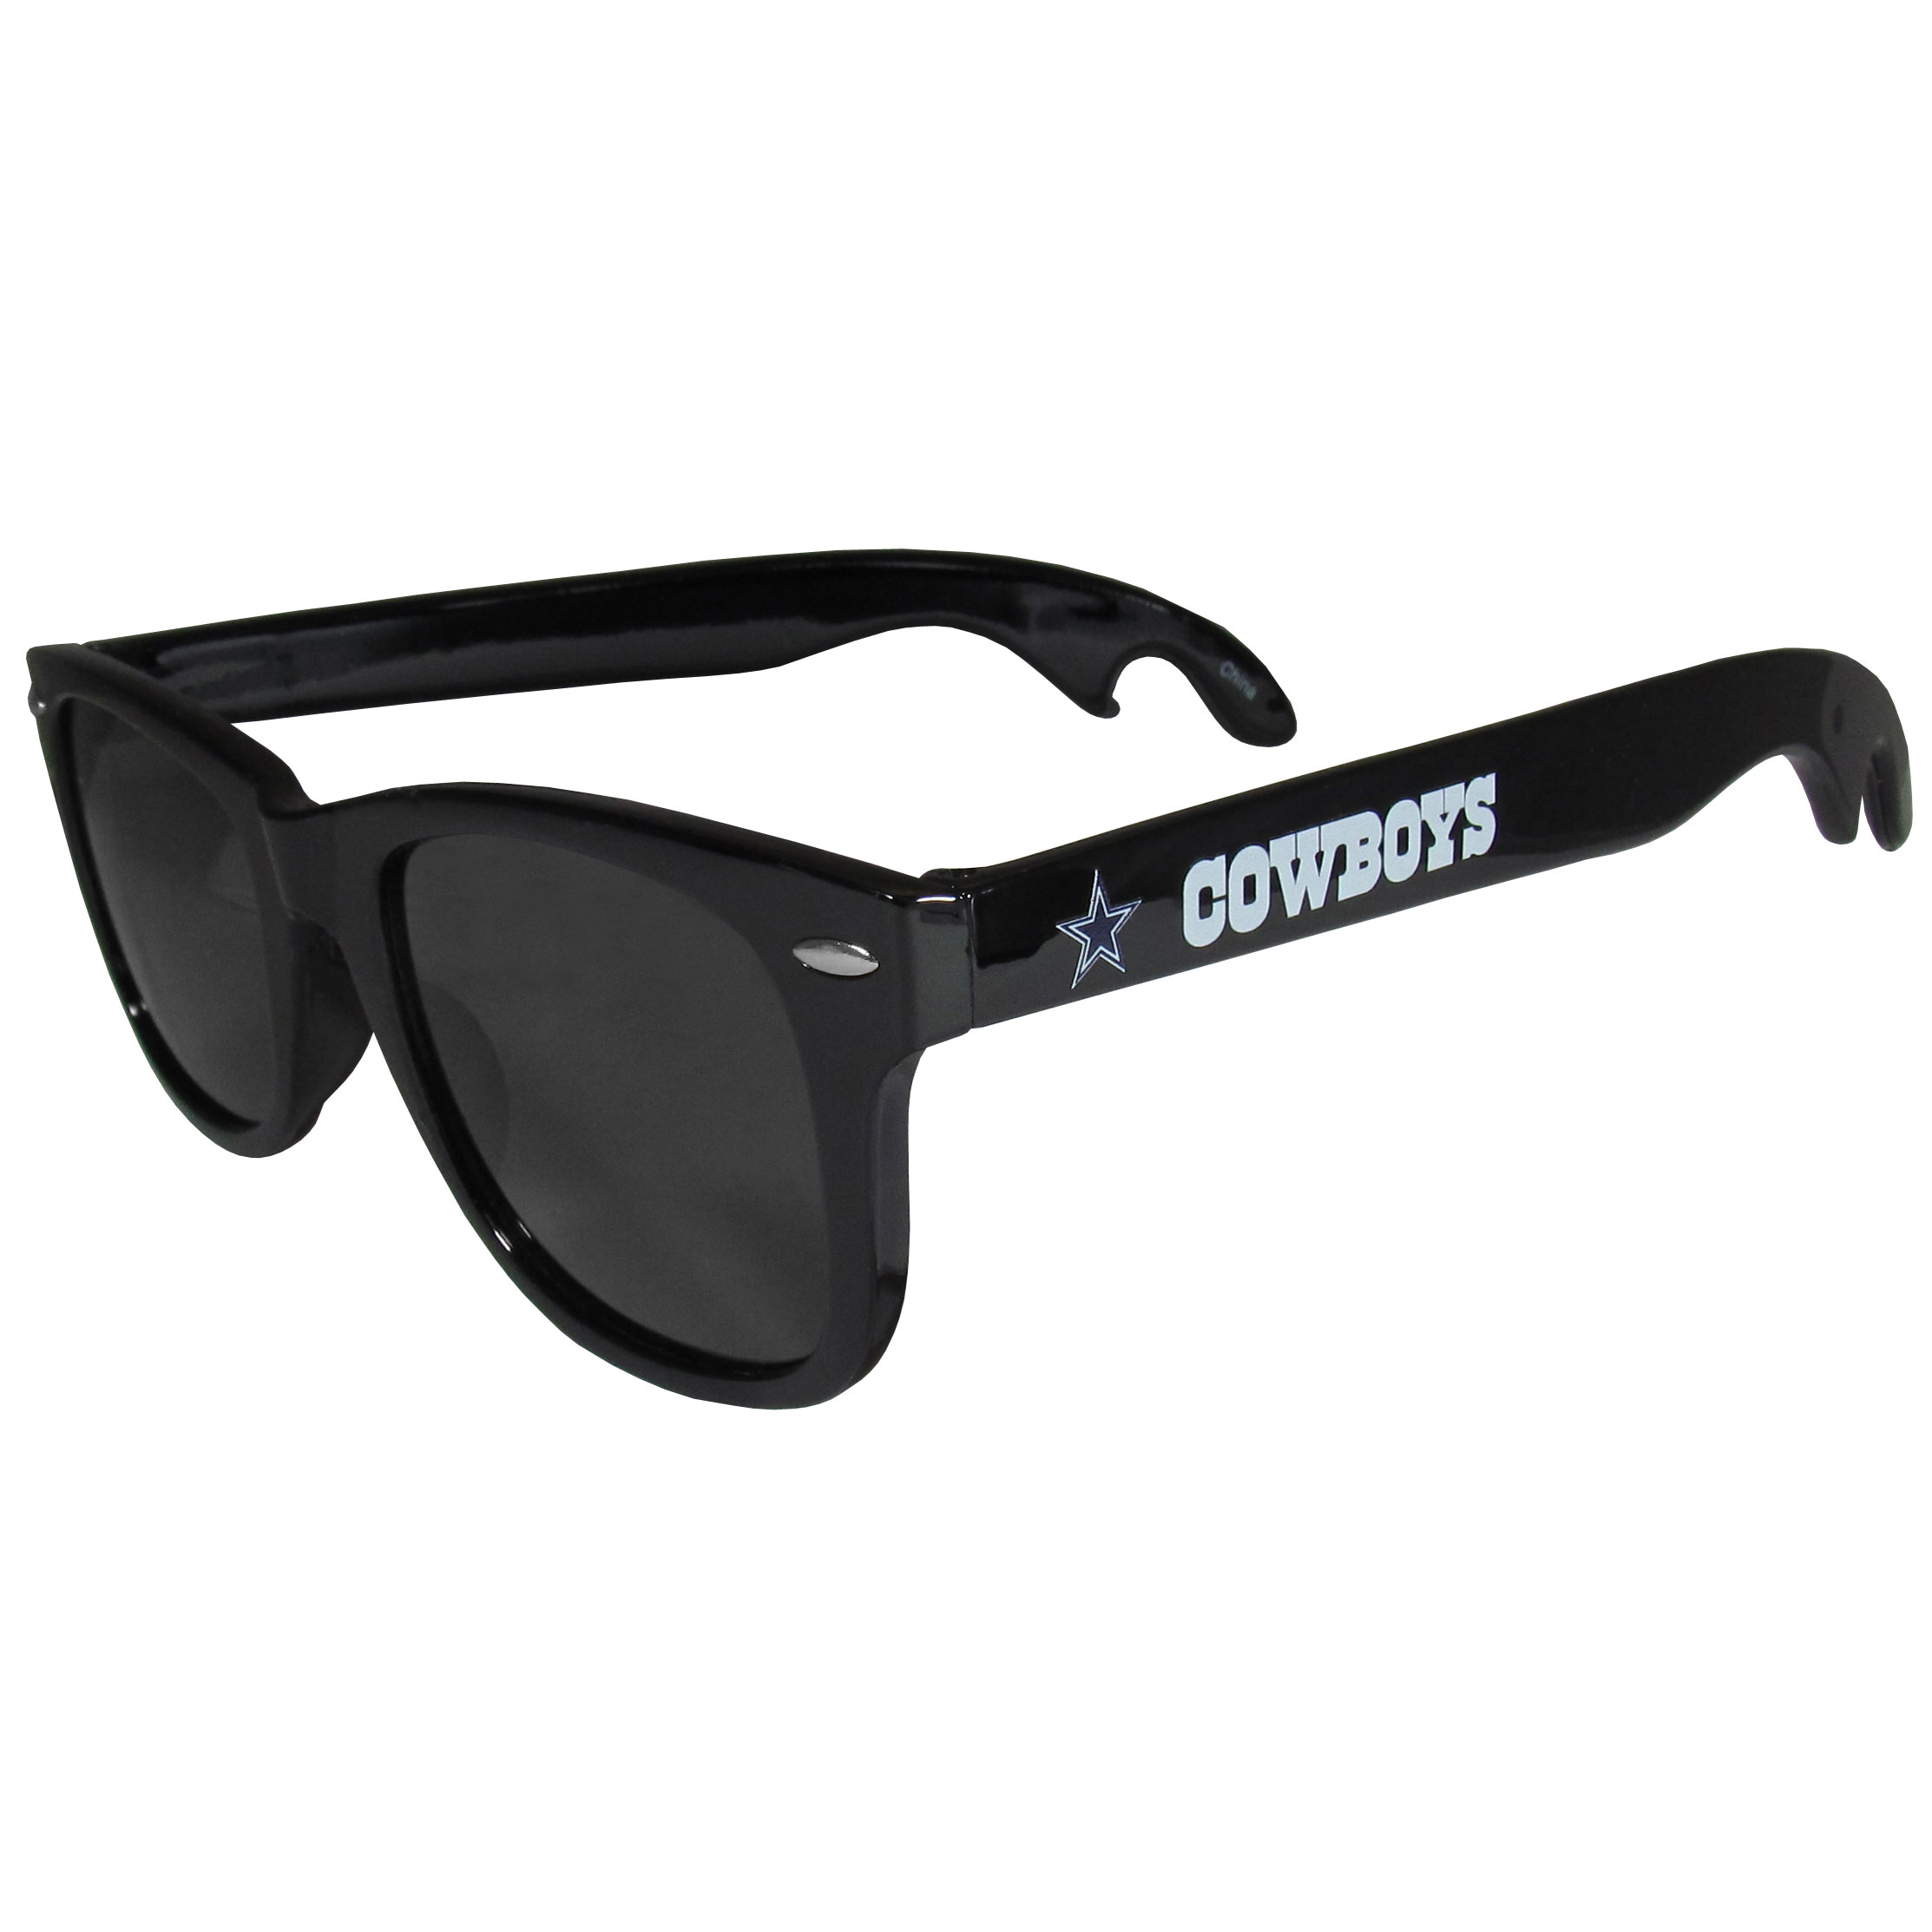 Dallas Cowboys Beachfarer Bottle Opener Sunglasses - Seriously, these sunglasses open bottles! Keep the party going with these amazing Dallas Cowboys bottle opener sunglasses. The stylish retro frames feature team designs on the arms and functional bottle openers on the end of the arms. Whether you are at the beach or having a backyard BBQ on game day, these shades will keep your eyes protected with 100% UVA/UVB protection and keep you hydrated with the handy bottle opener arms.